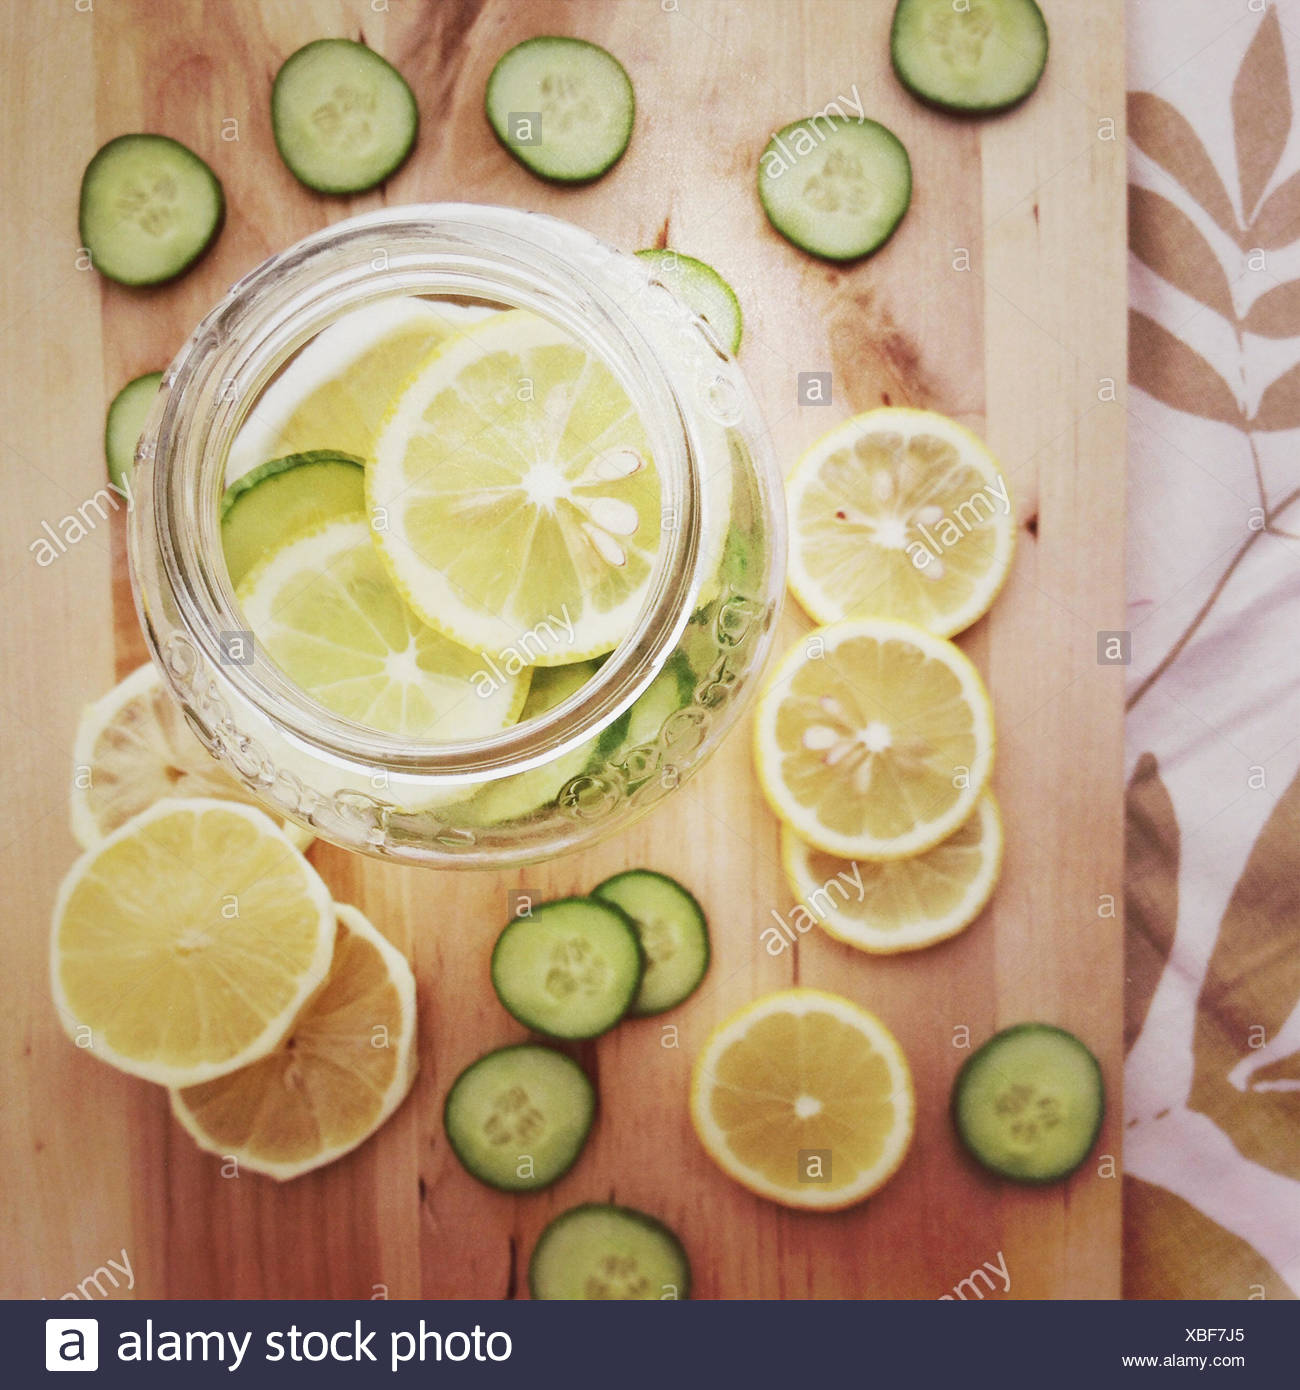 Jar With Lemon And Lime Slices - Stock Image